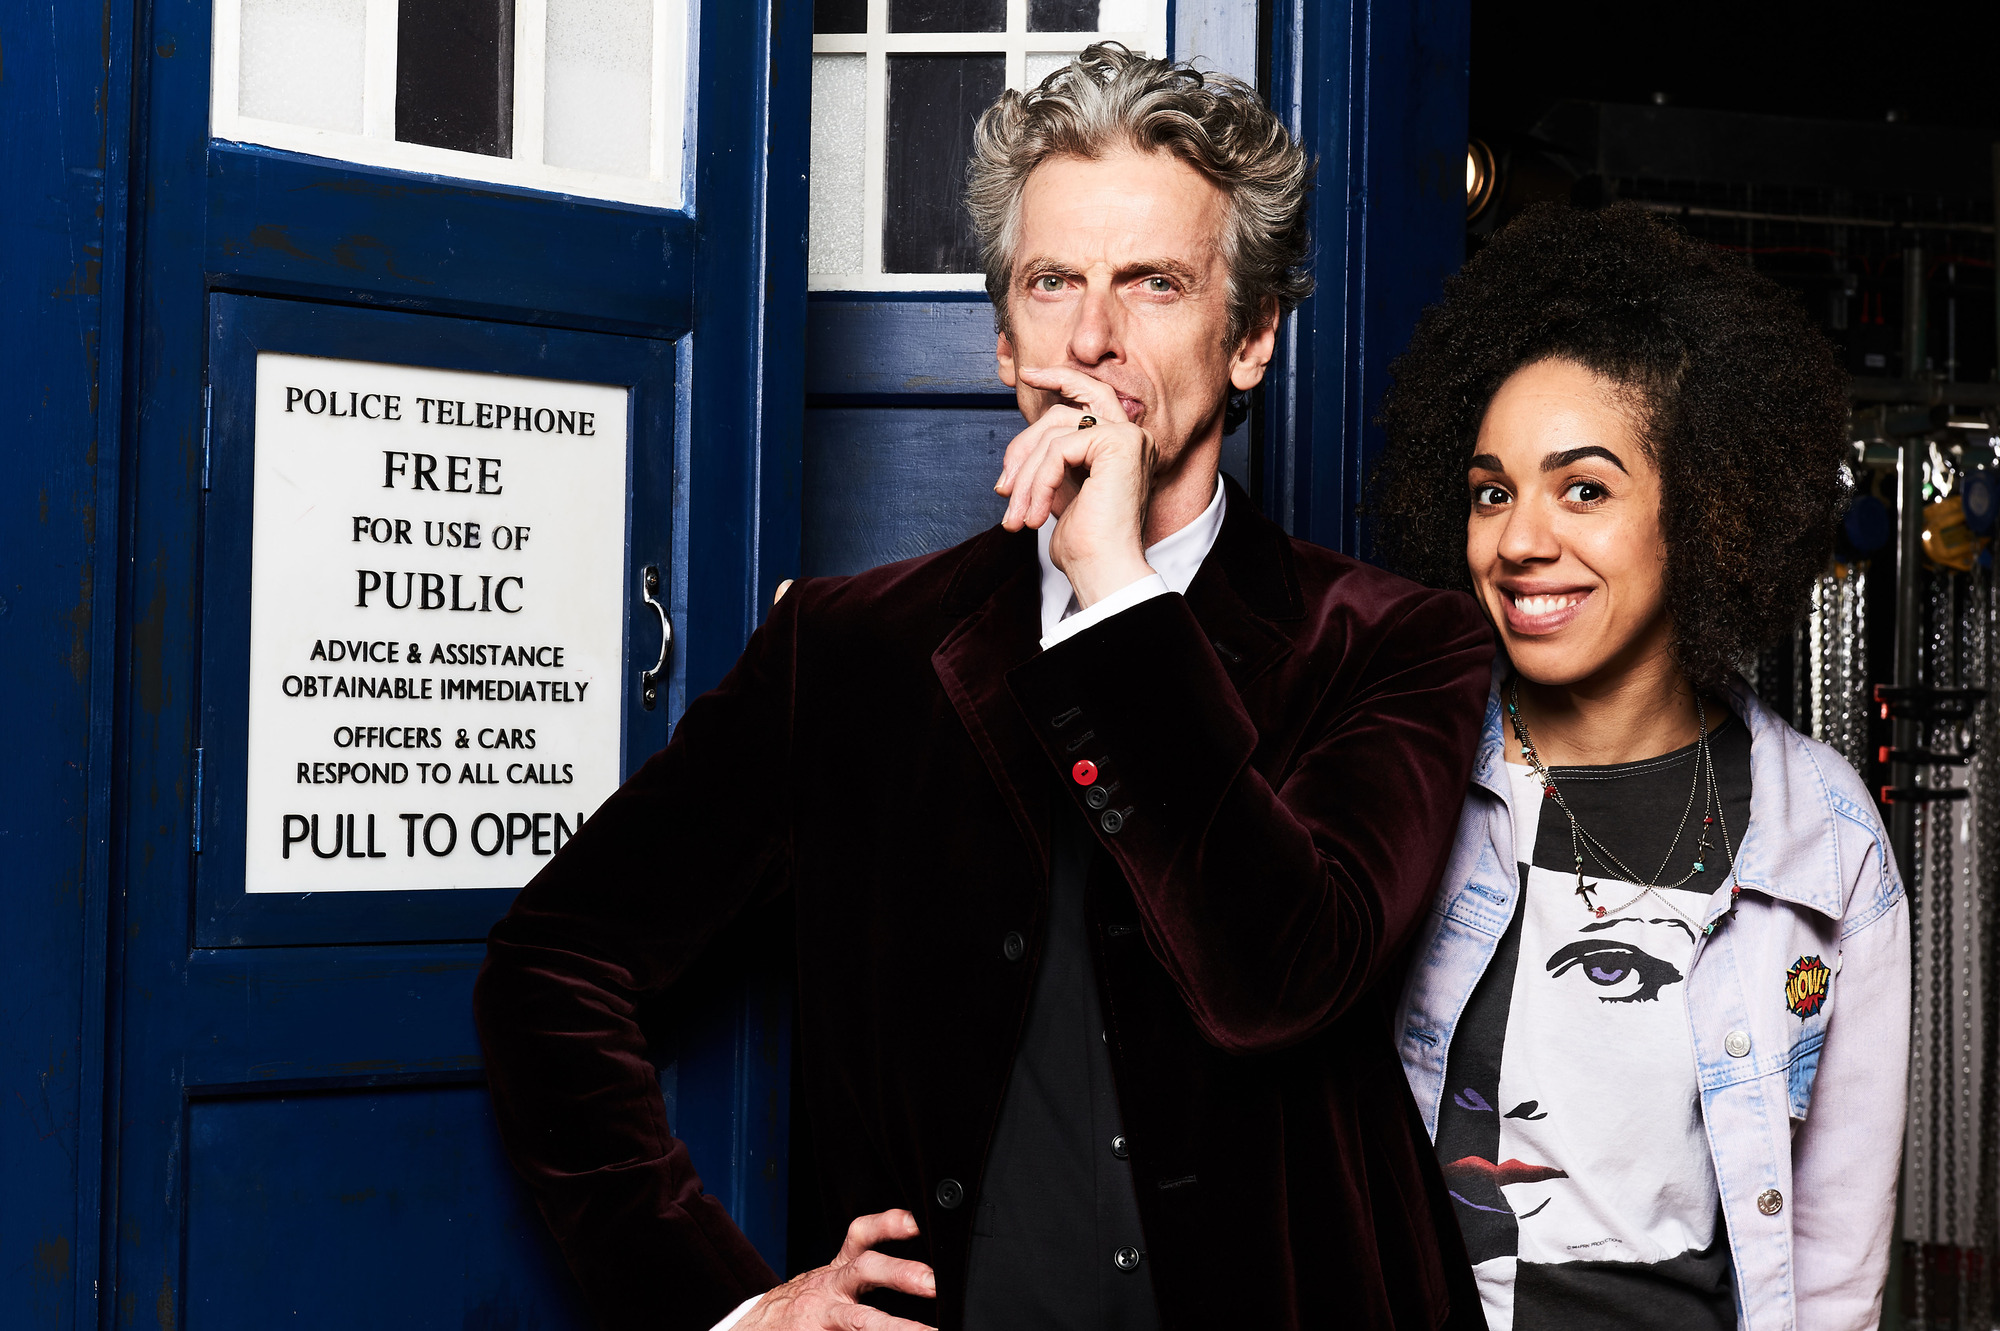 Doctor Who season 10: Everything you need to know about Peter Capaldi and Steven Moffat's final series